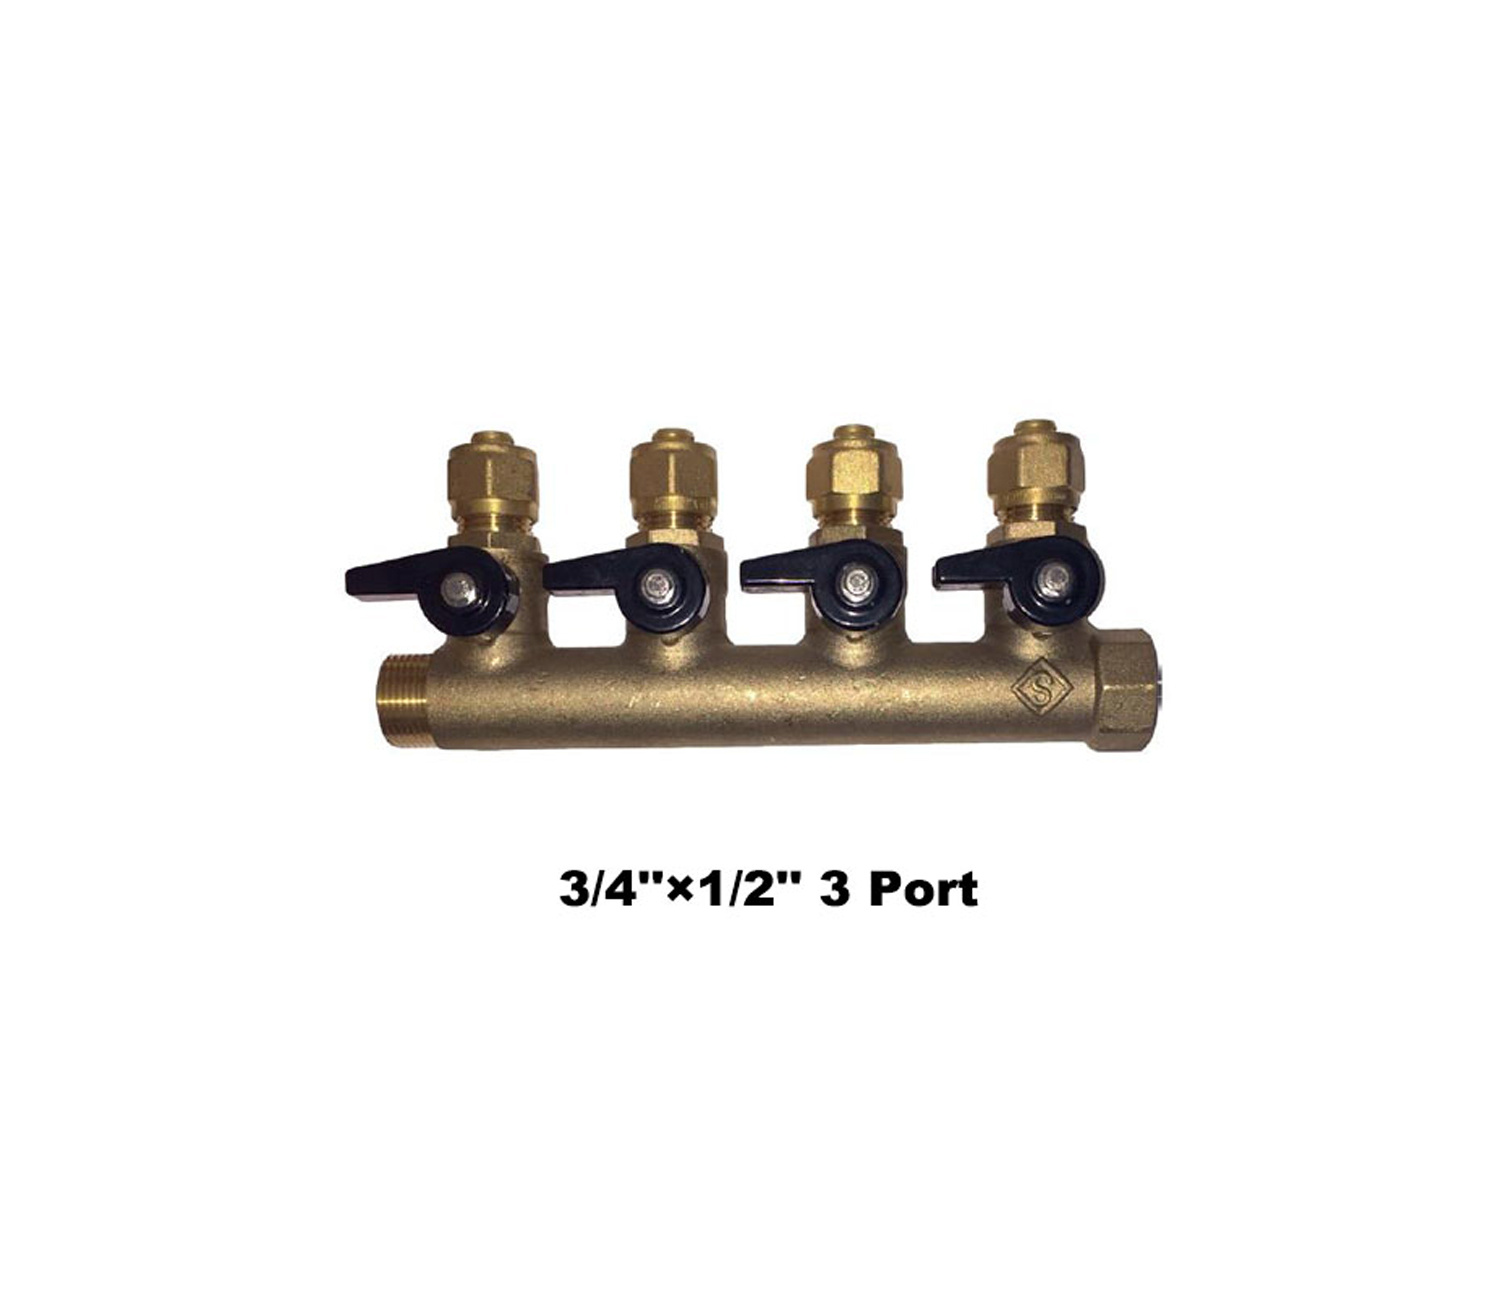 "Brass Manifolds with ISO Valves (With Adaptors) 3/4""×1/2"" 3 Port Manifold+ISO (771894K)"